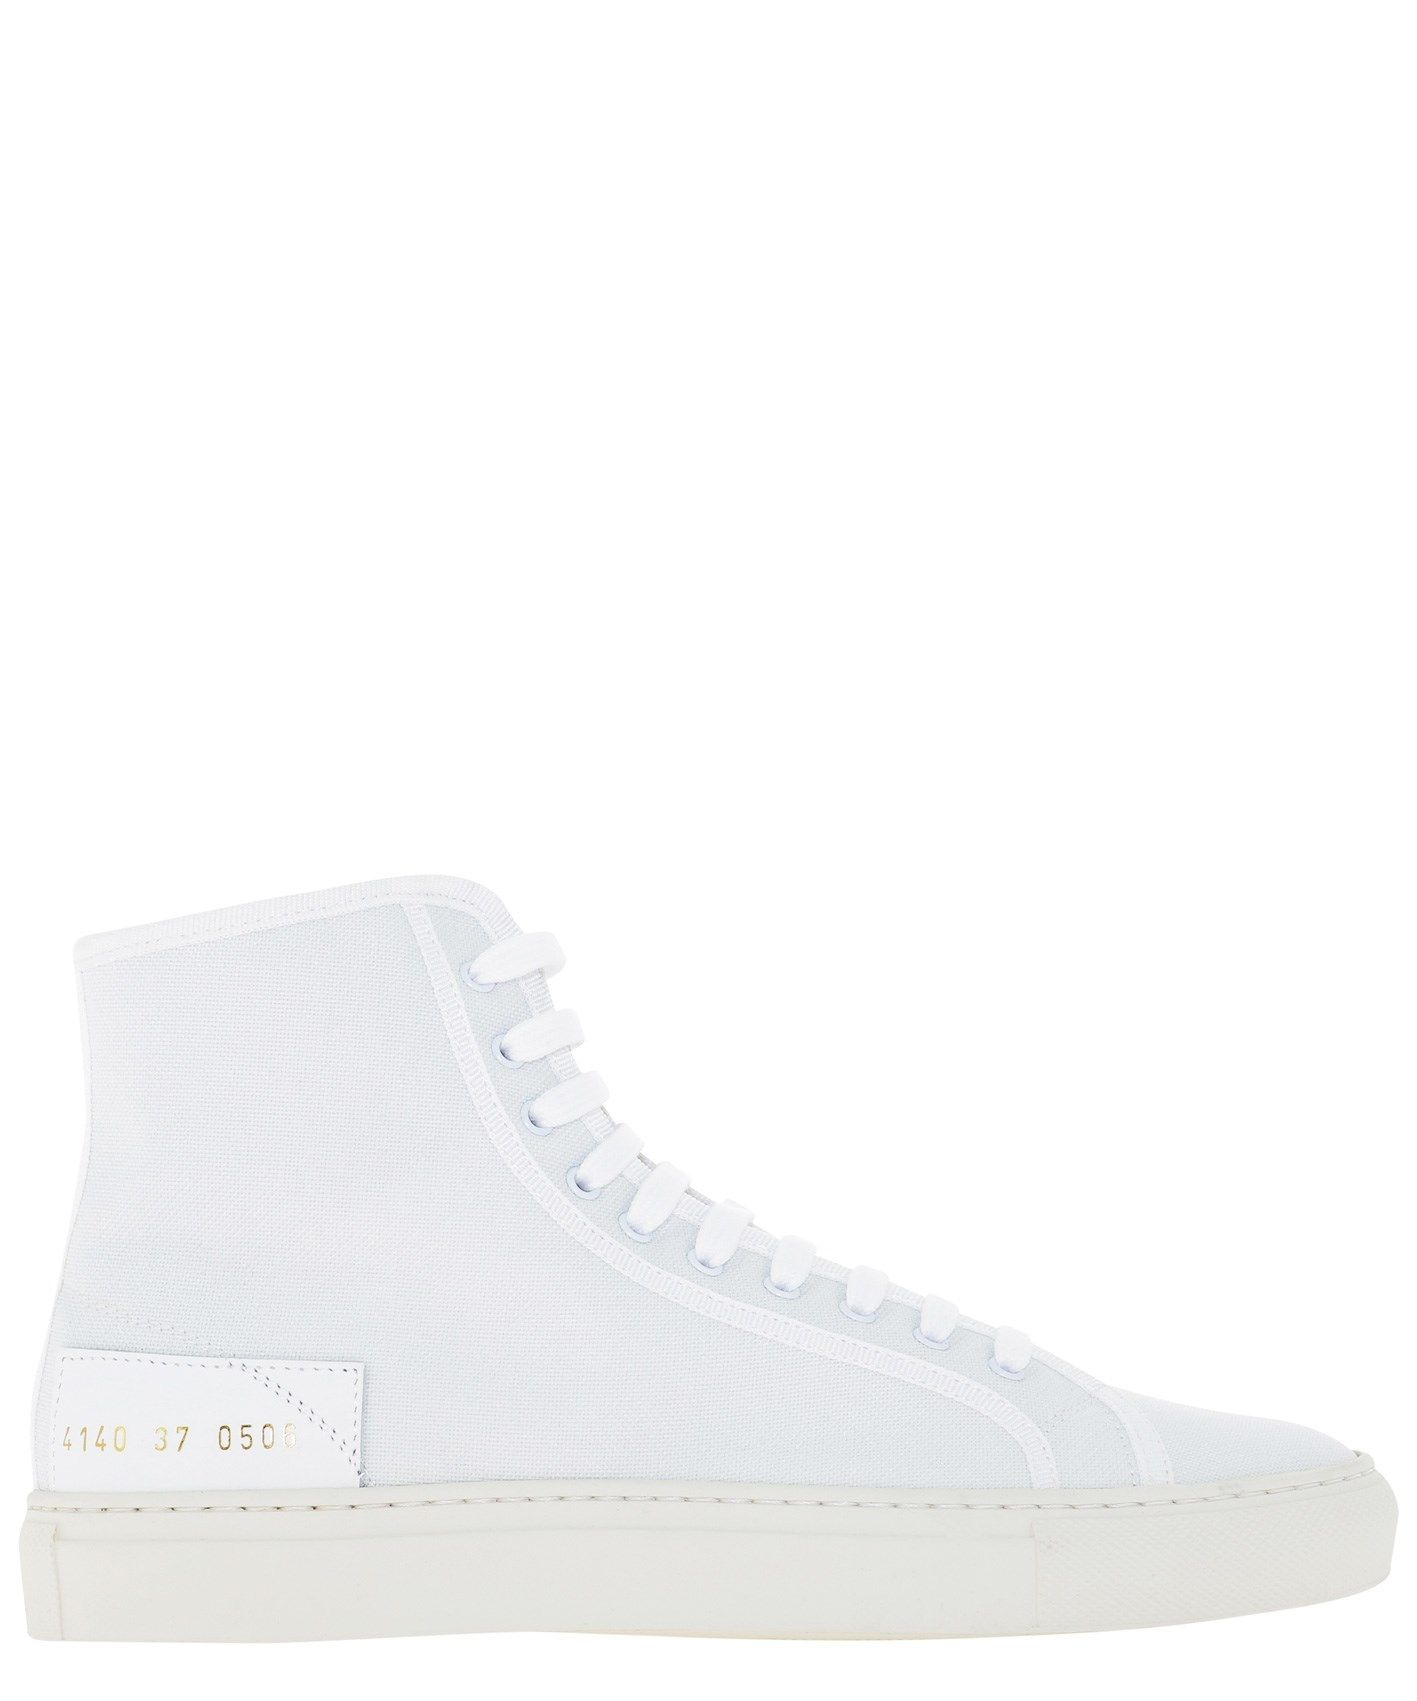 Common Projects COMMON PROJECTS WOMEN'S 41400506 WHITE OTHER MATERIALS SNEAKERS